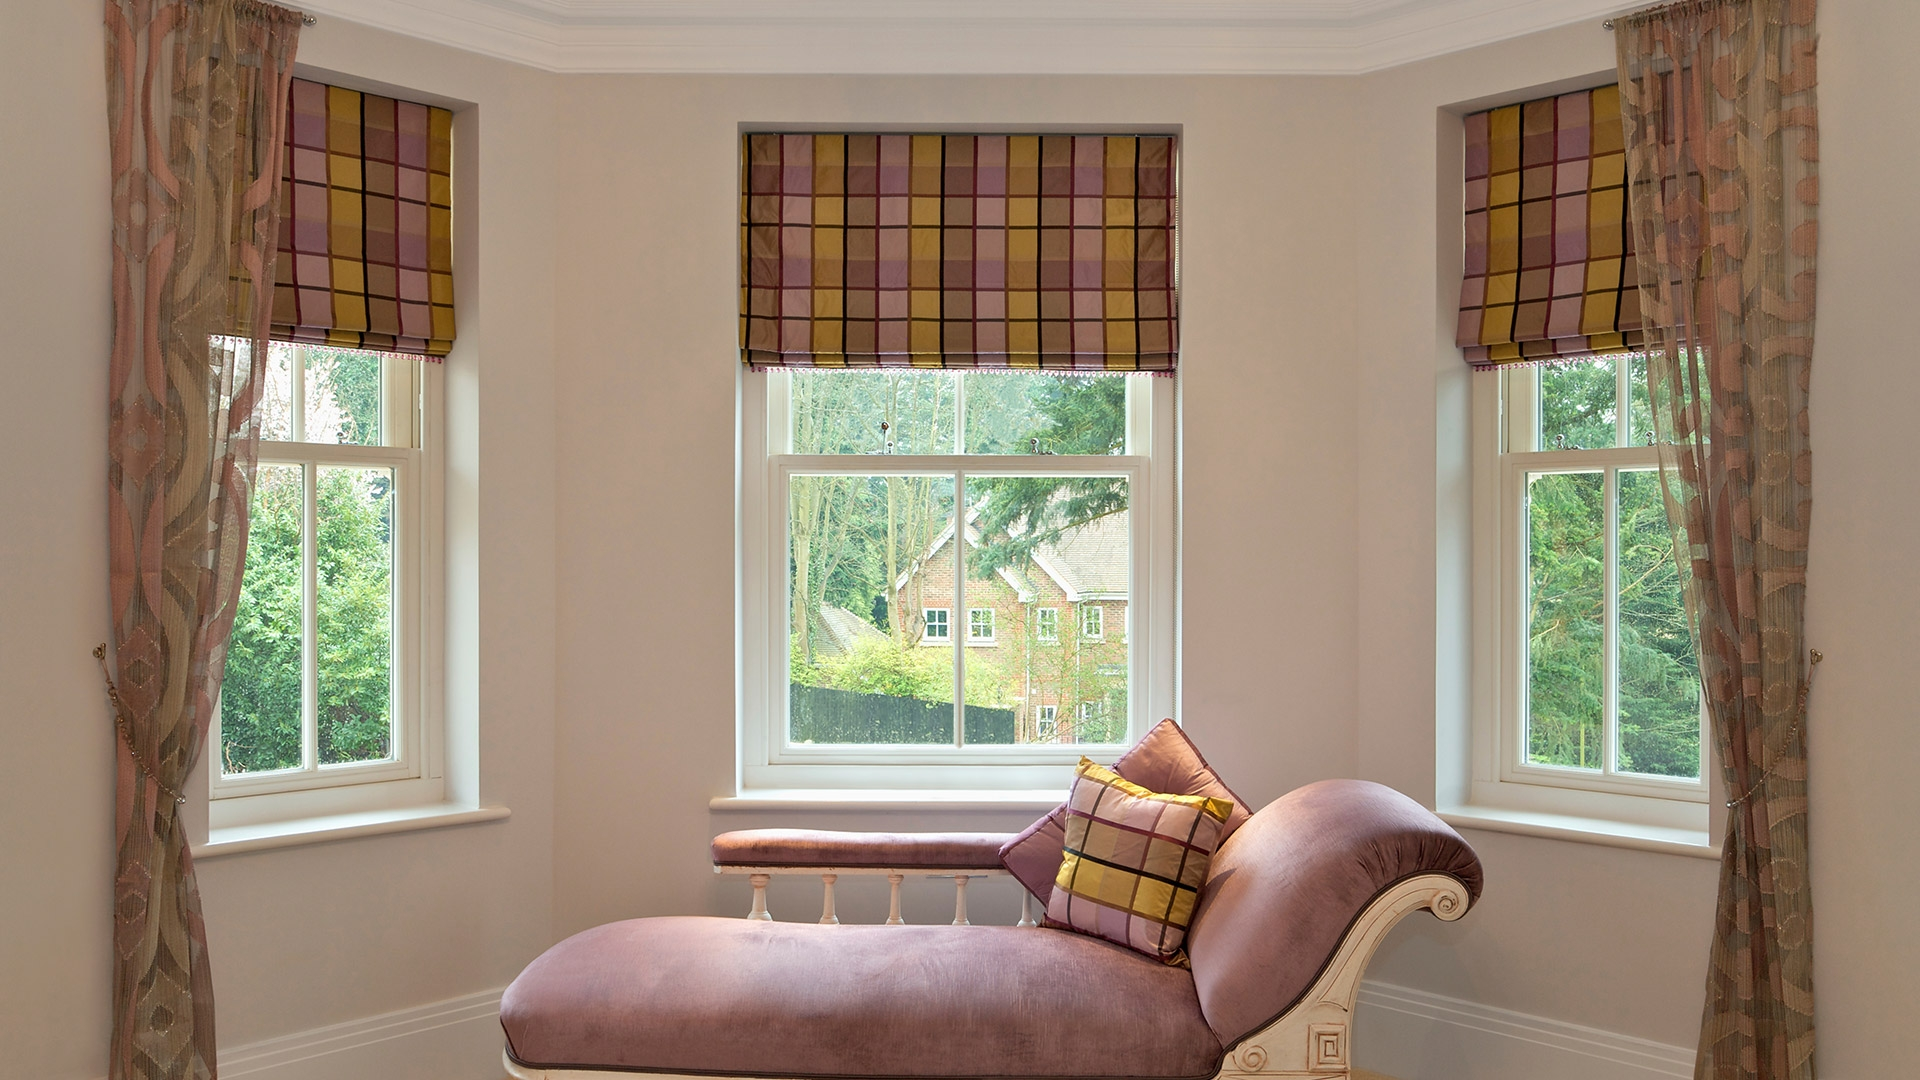 Made To Measure Roman Blinds For Bay Windows Best Blind 2017 Regarding Handmade Roman Blinds (Image 10 of 15)